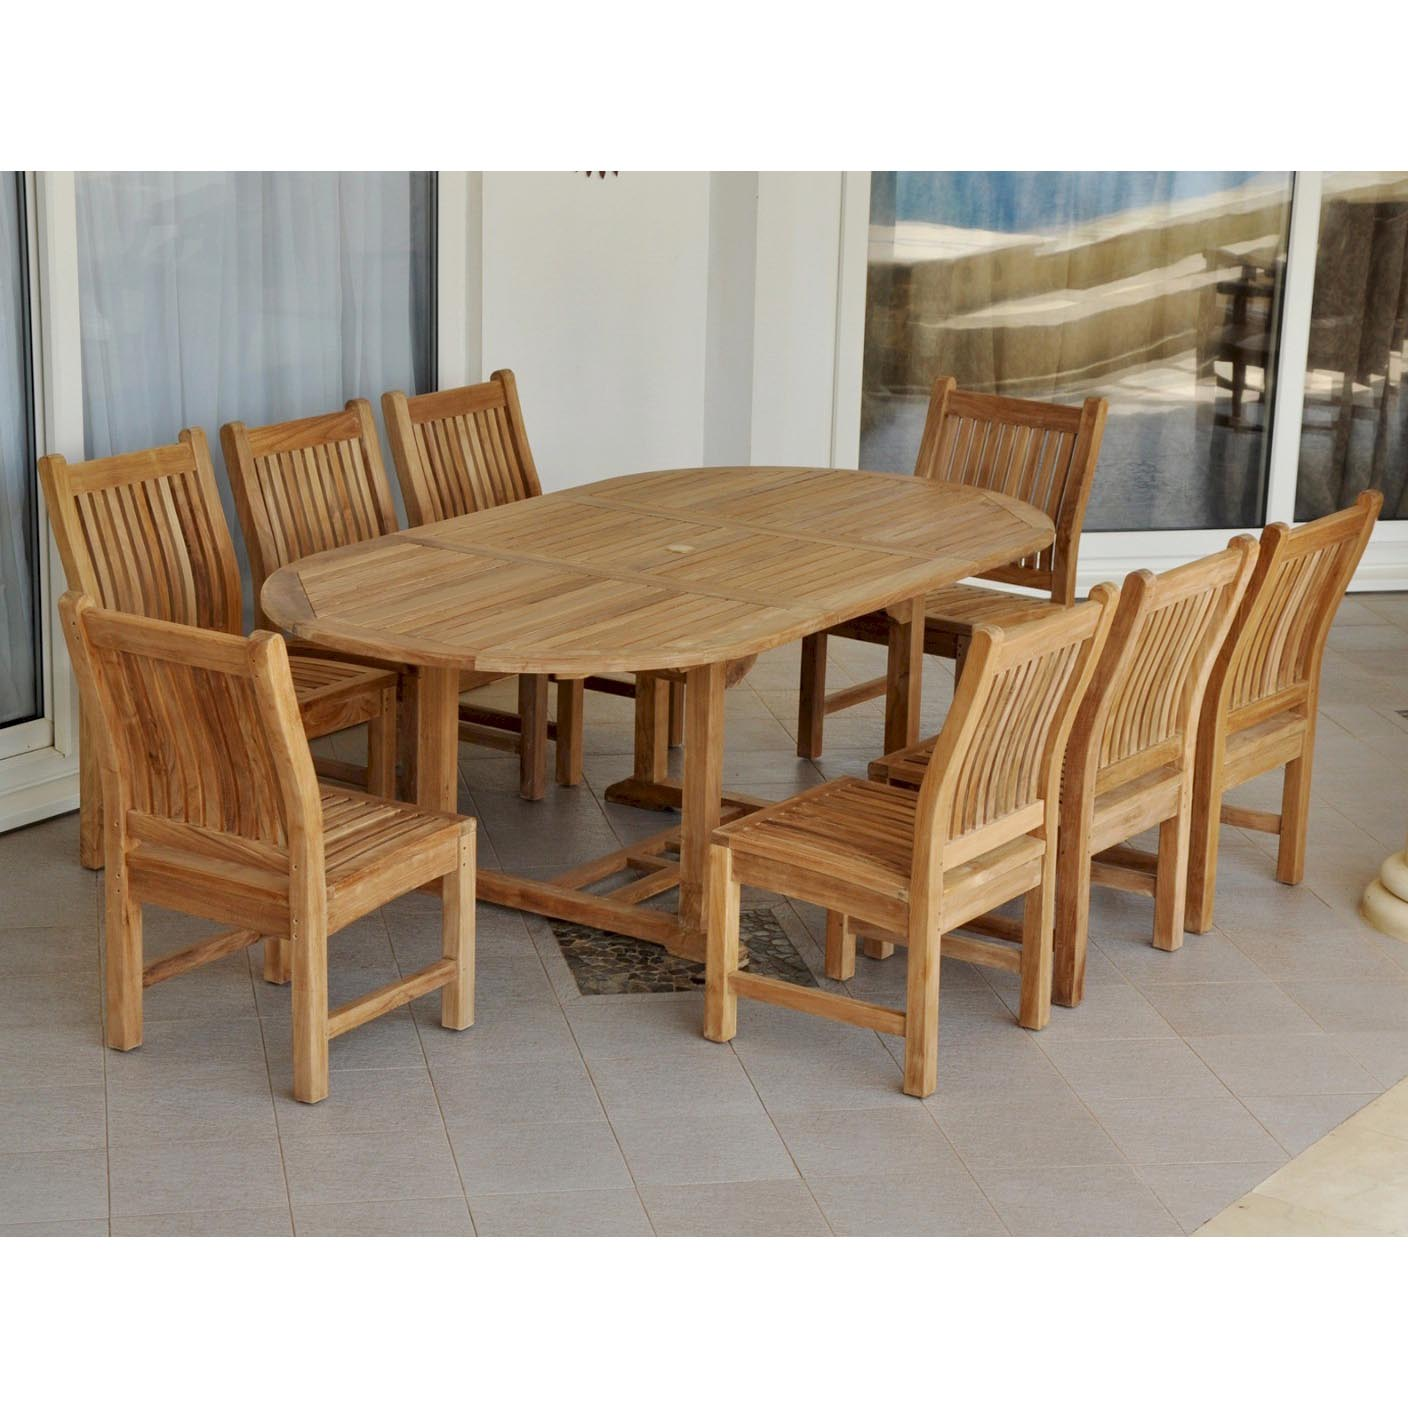 Purchase Teak Bahama Oval Table Sahara Dining Chairs Product Photo